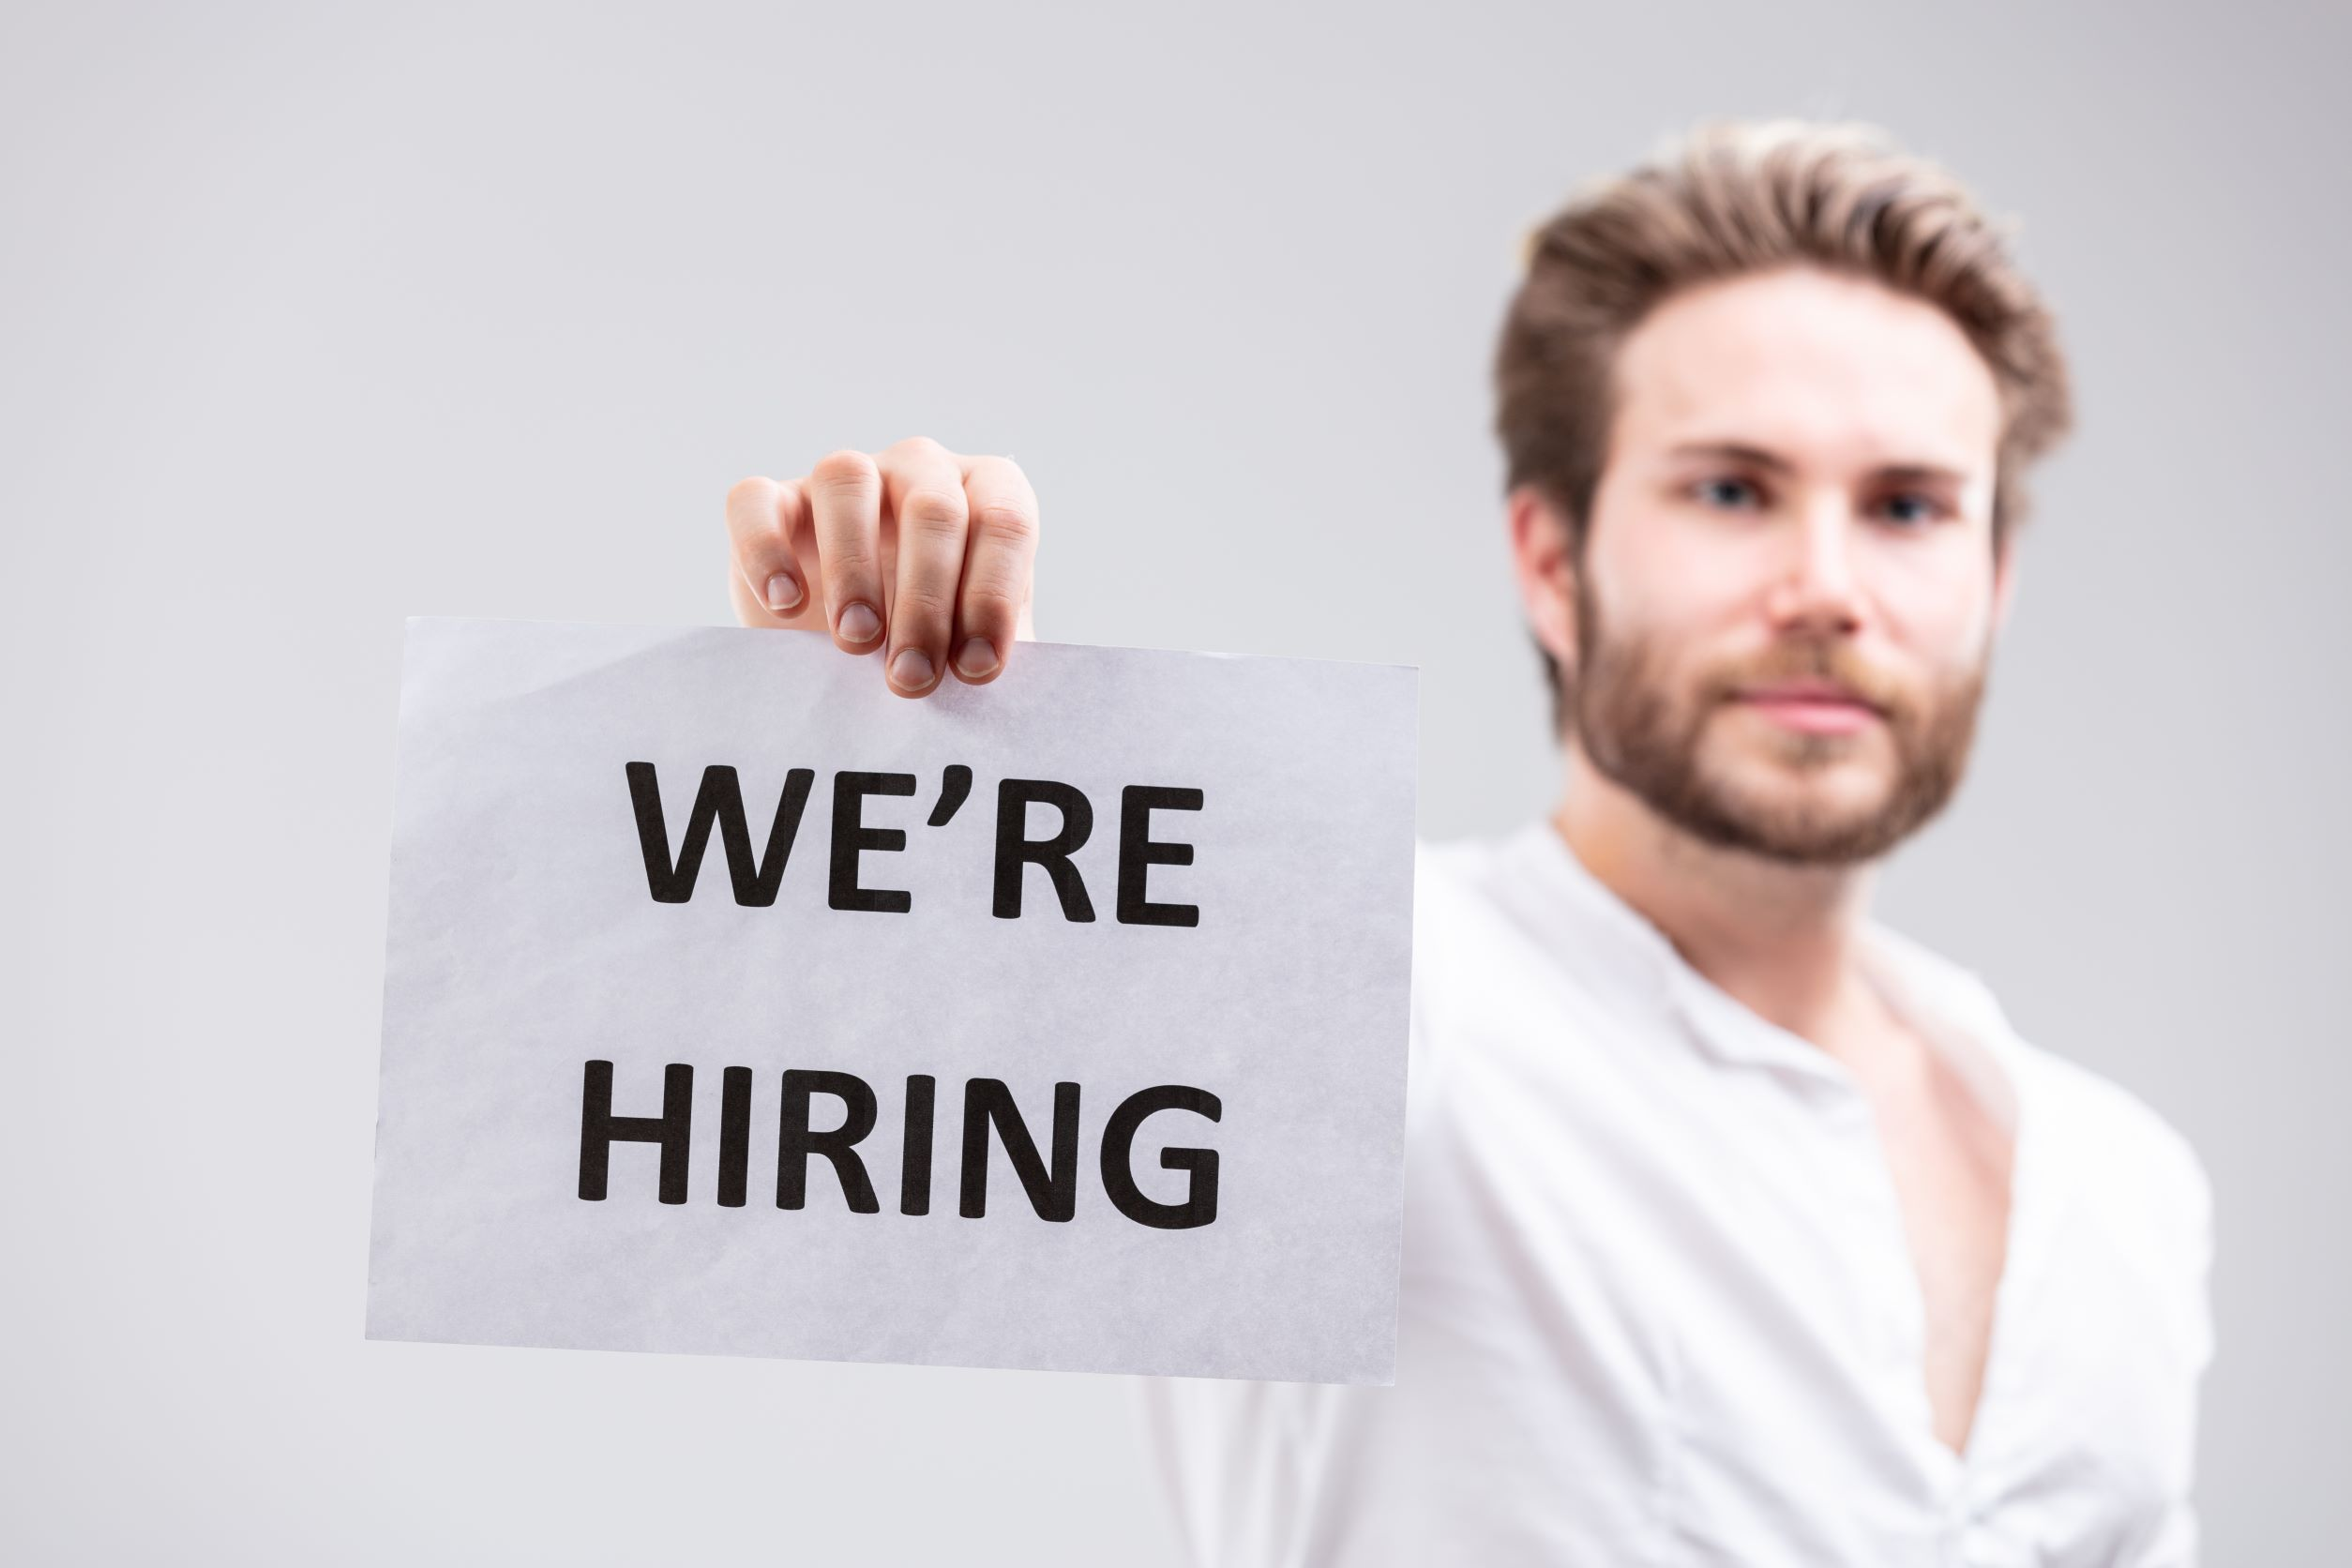 Recruitment video to get excellent new hires